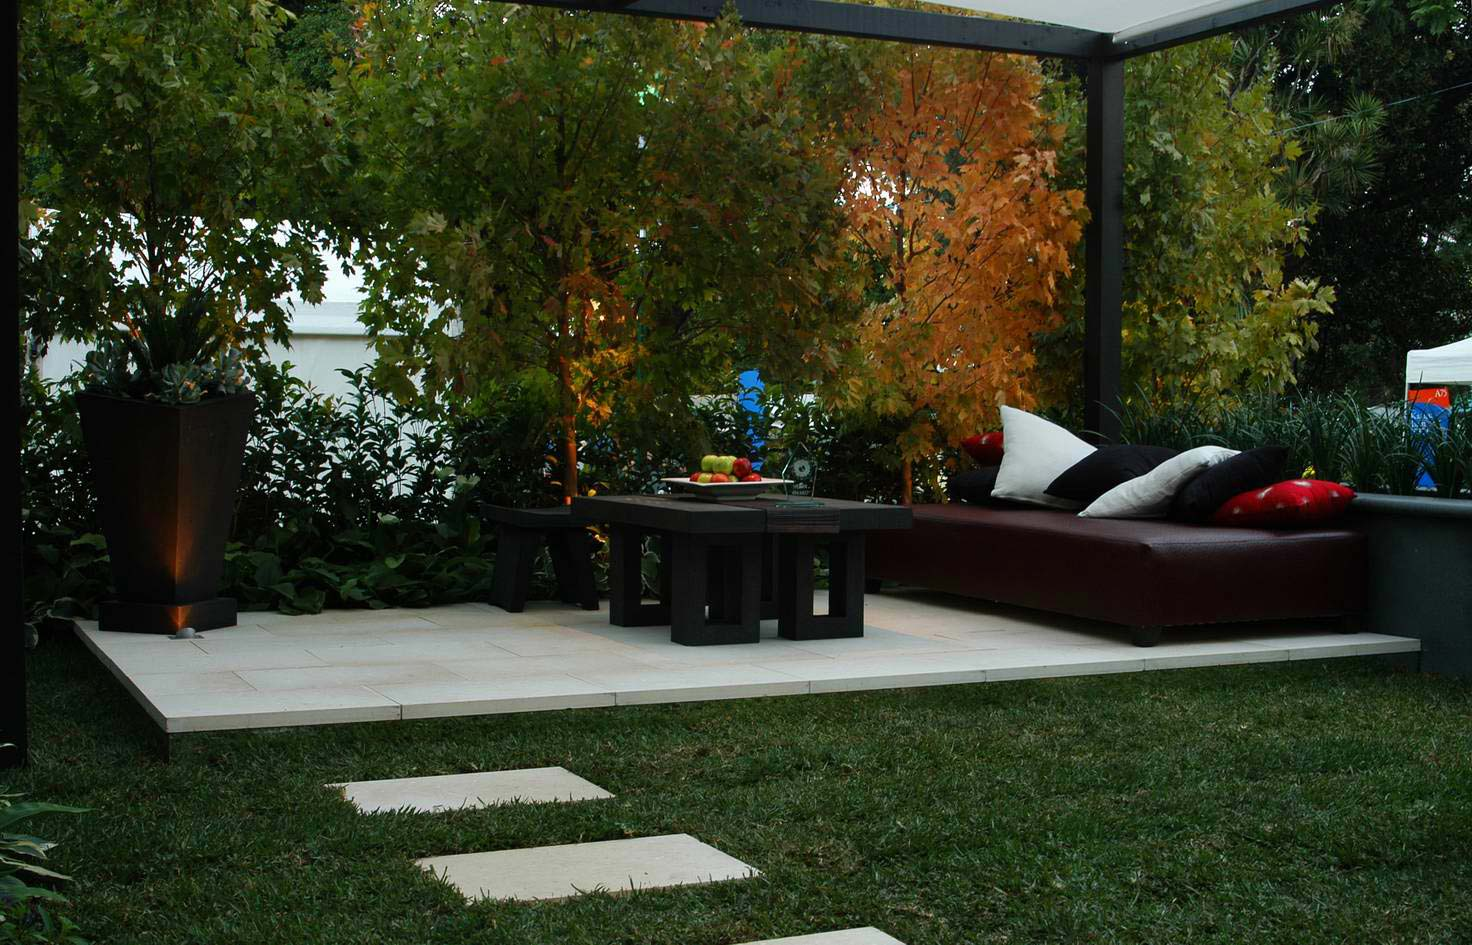 Garden designs melbourne pdf for Landscape design melbourne